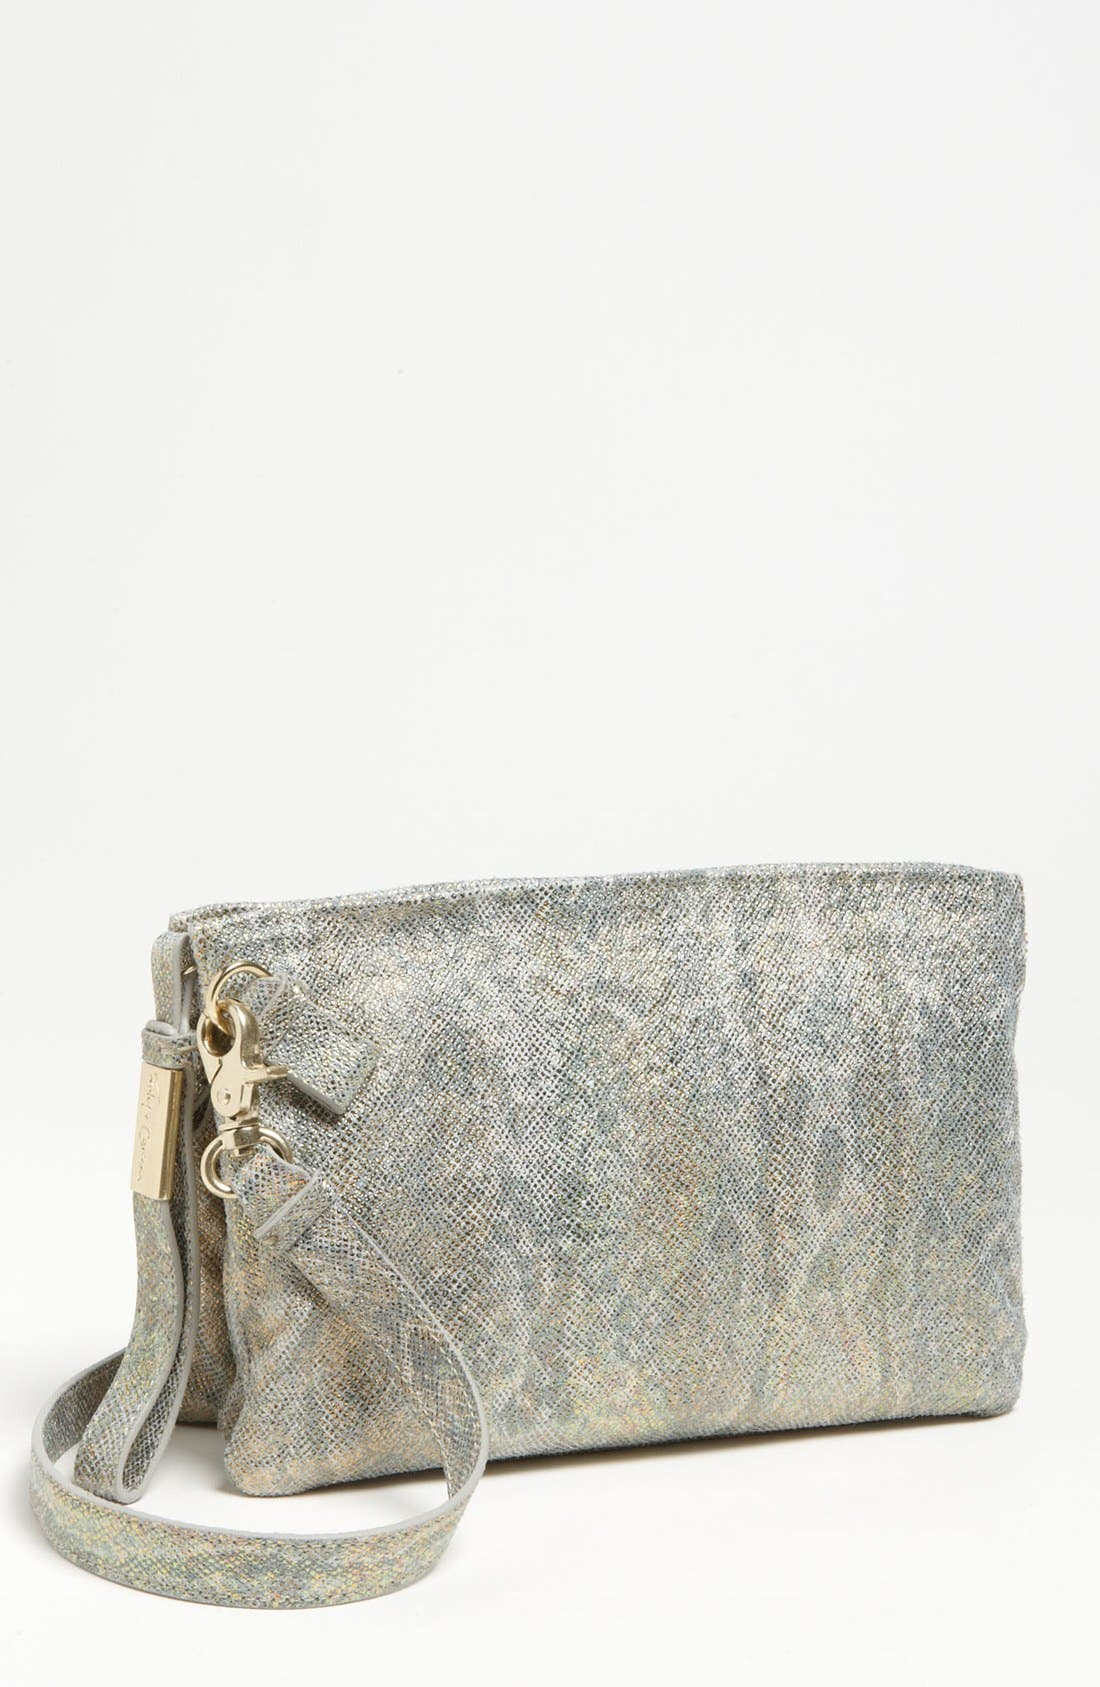 Alternate Image 1 Selected - Foley + Corinna 'Cache Day' Leather Crossbody Clutch